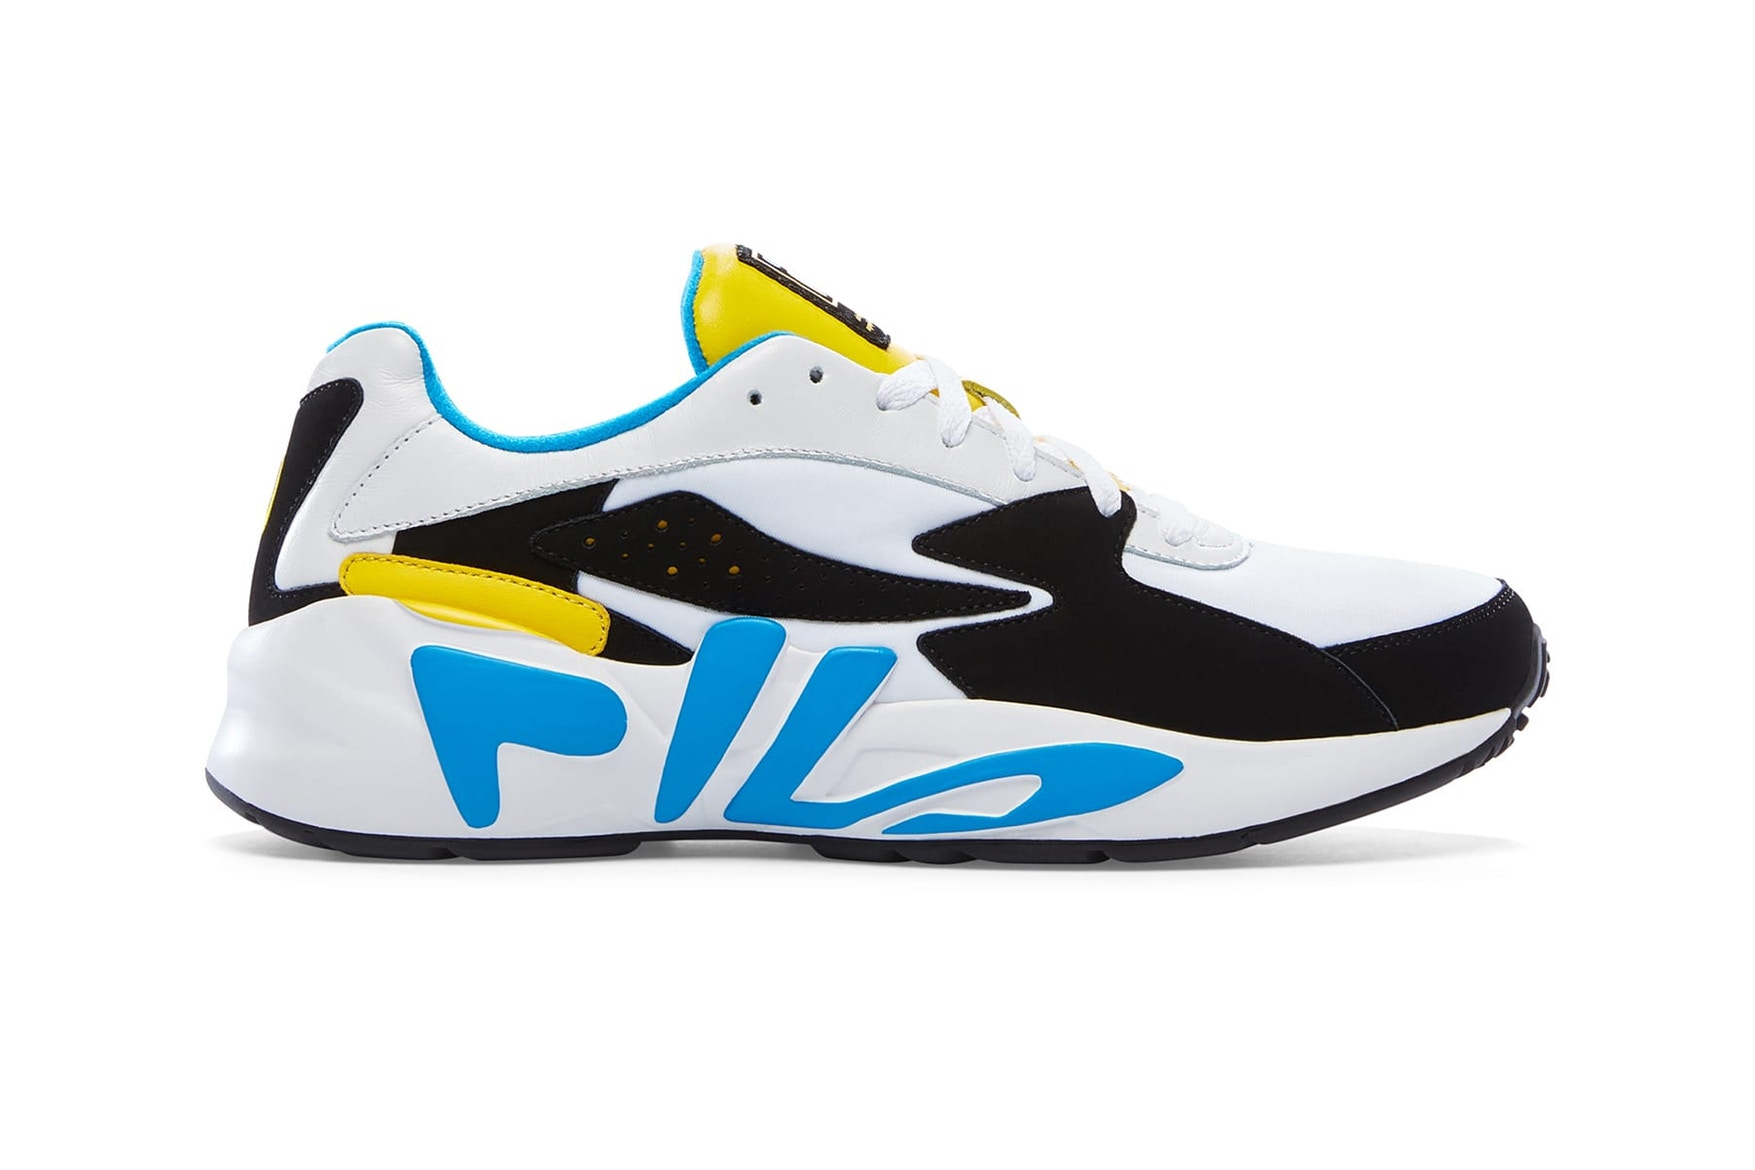 fila-revives-the-classic-mindblower-with-over-40-limited-edition-collaborations-32